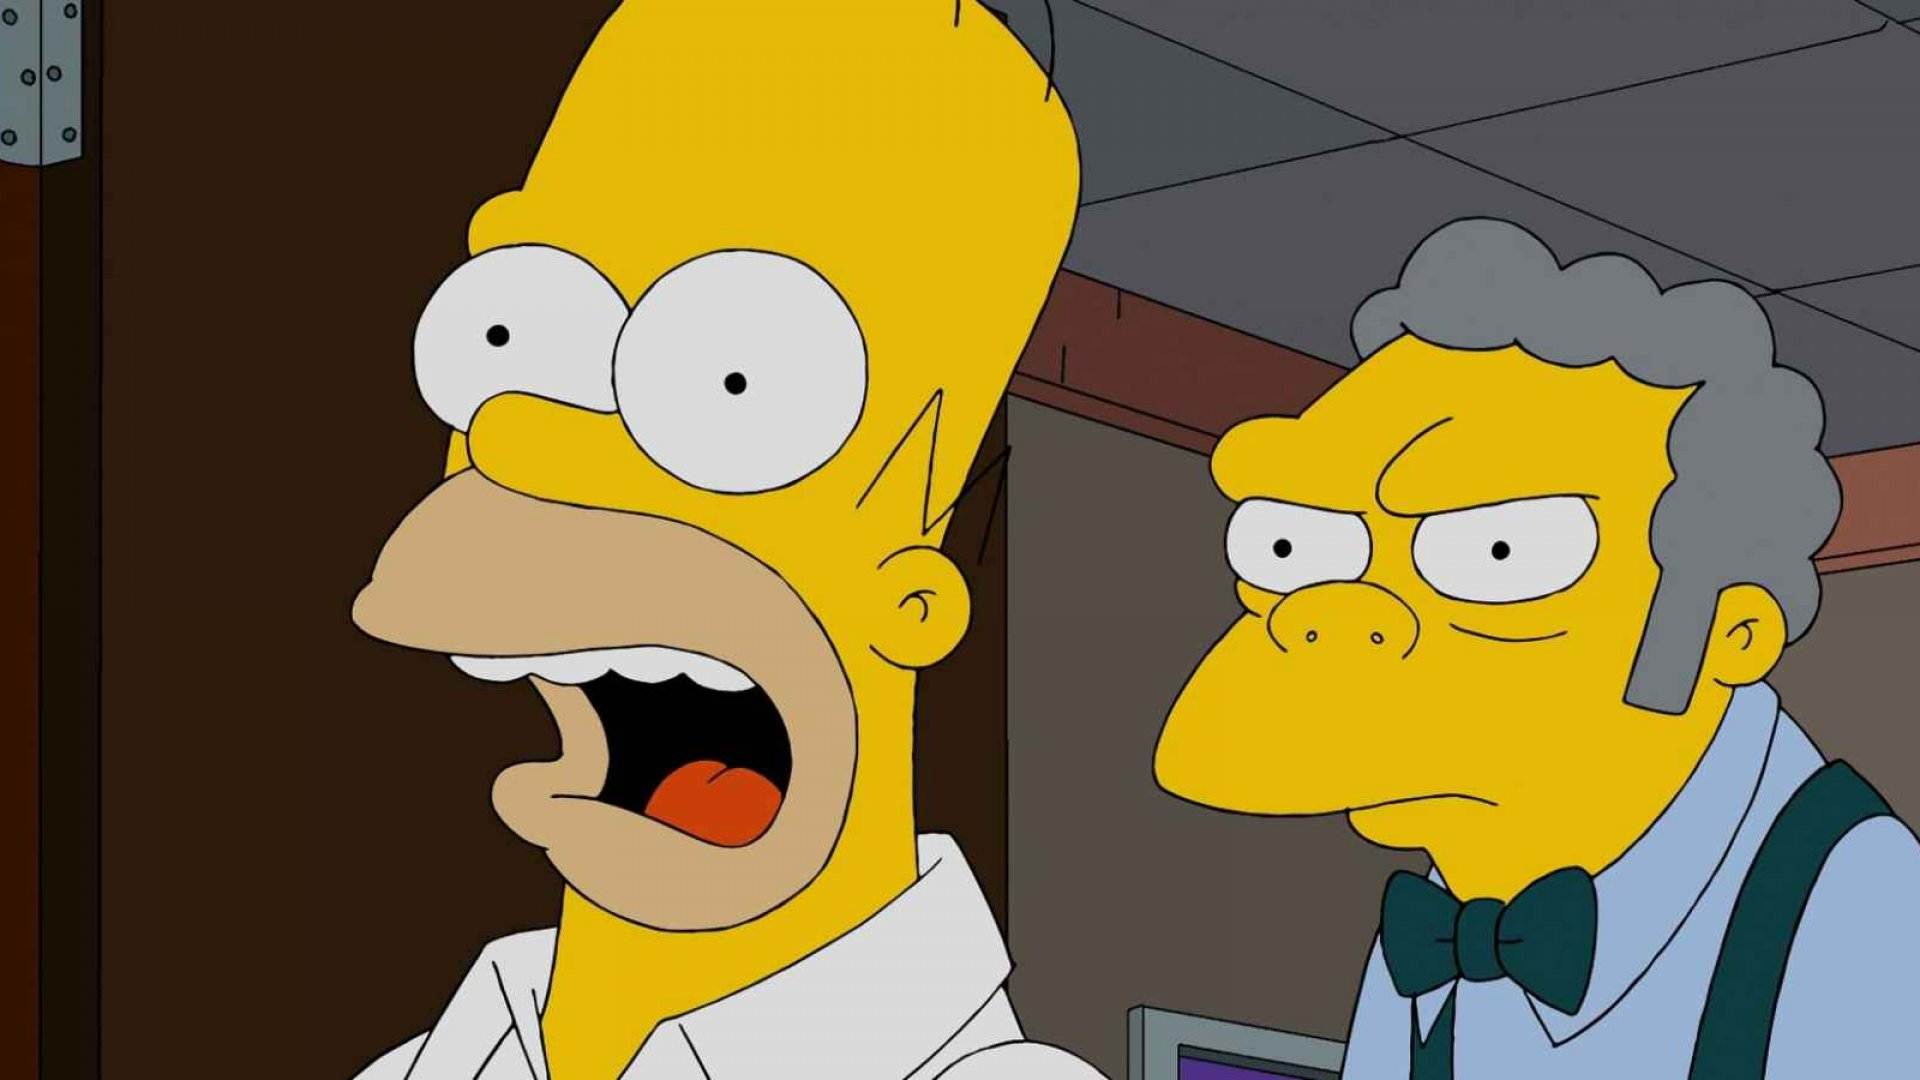 Why This Might Be the Most Innovative 'Simpsons' Episode Ever